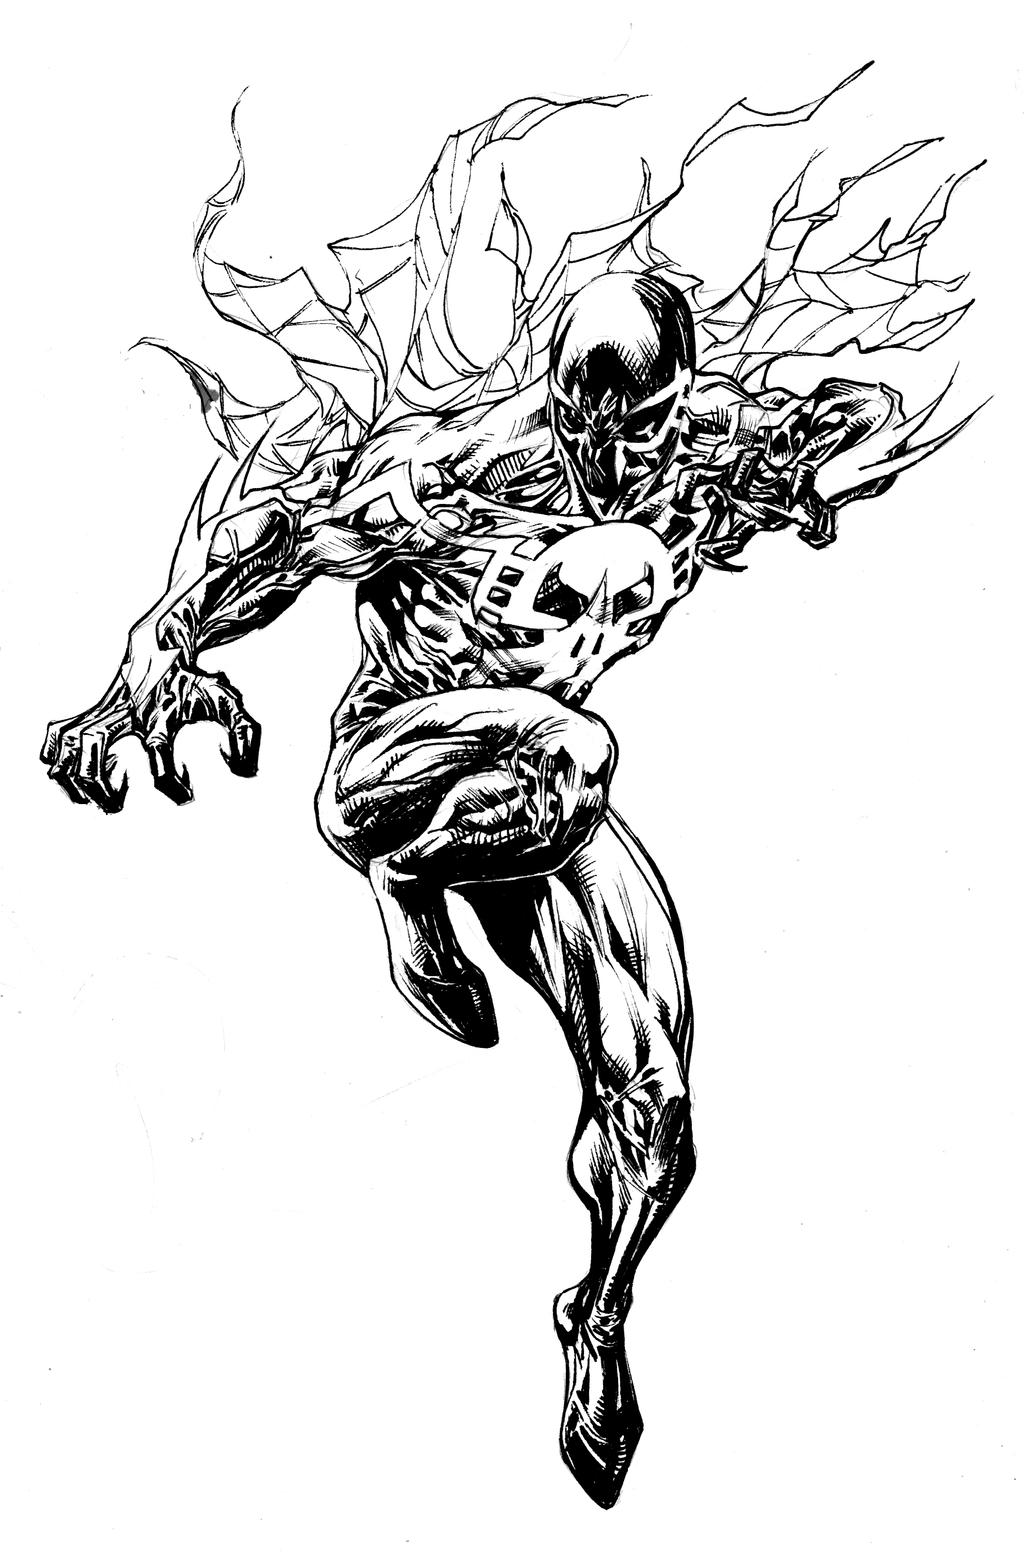 Spider man 2099 aug9th2013 by spiderguile on deviantart for Spider man 2099 coloring pages